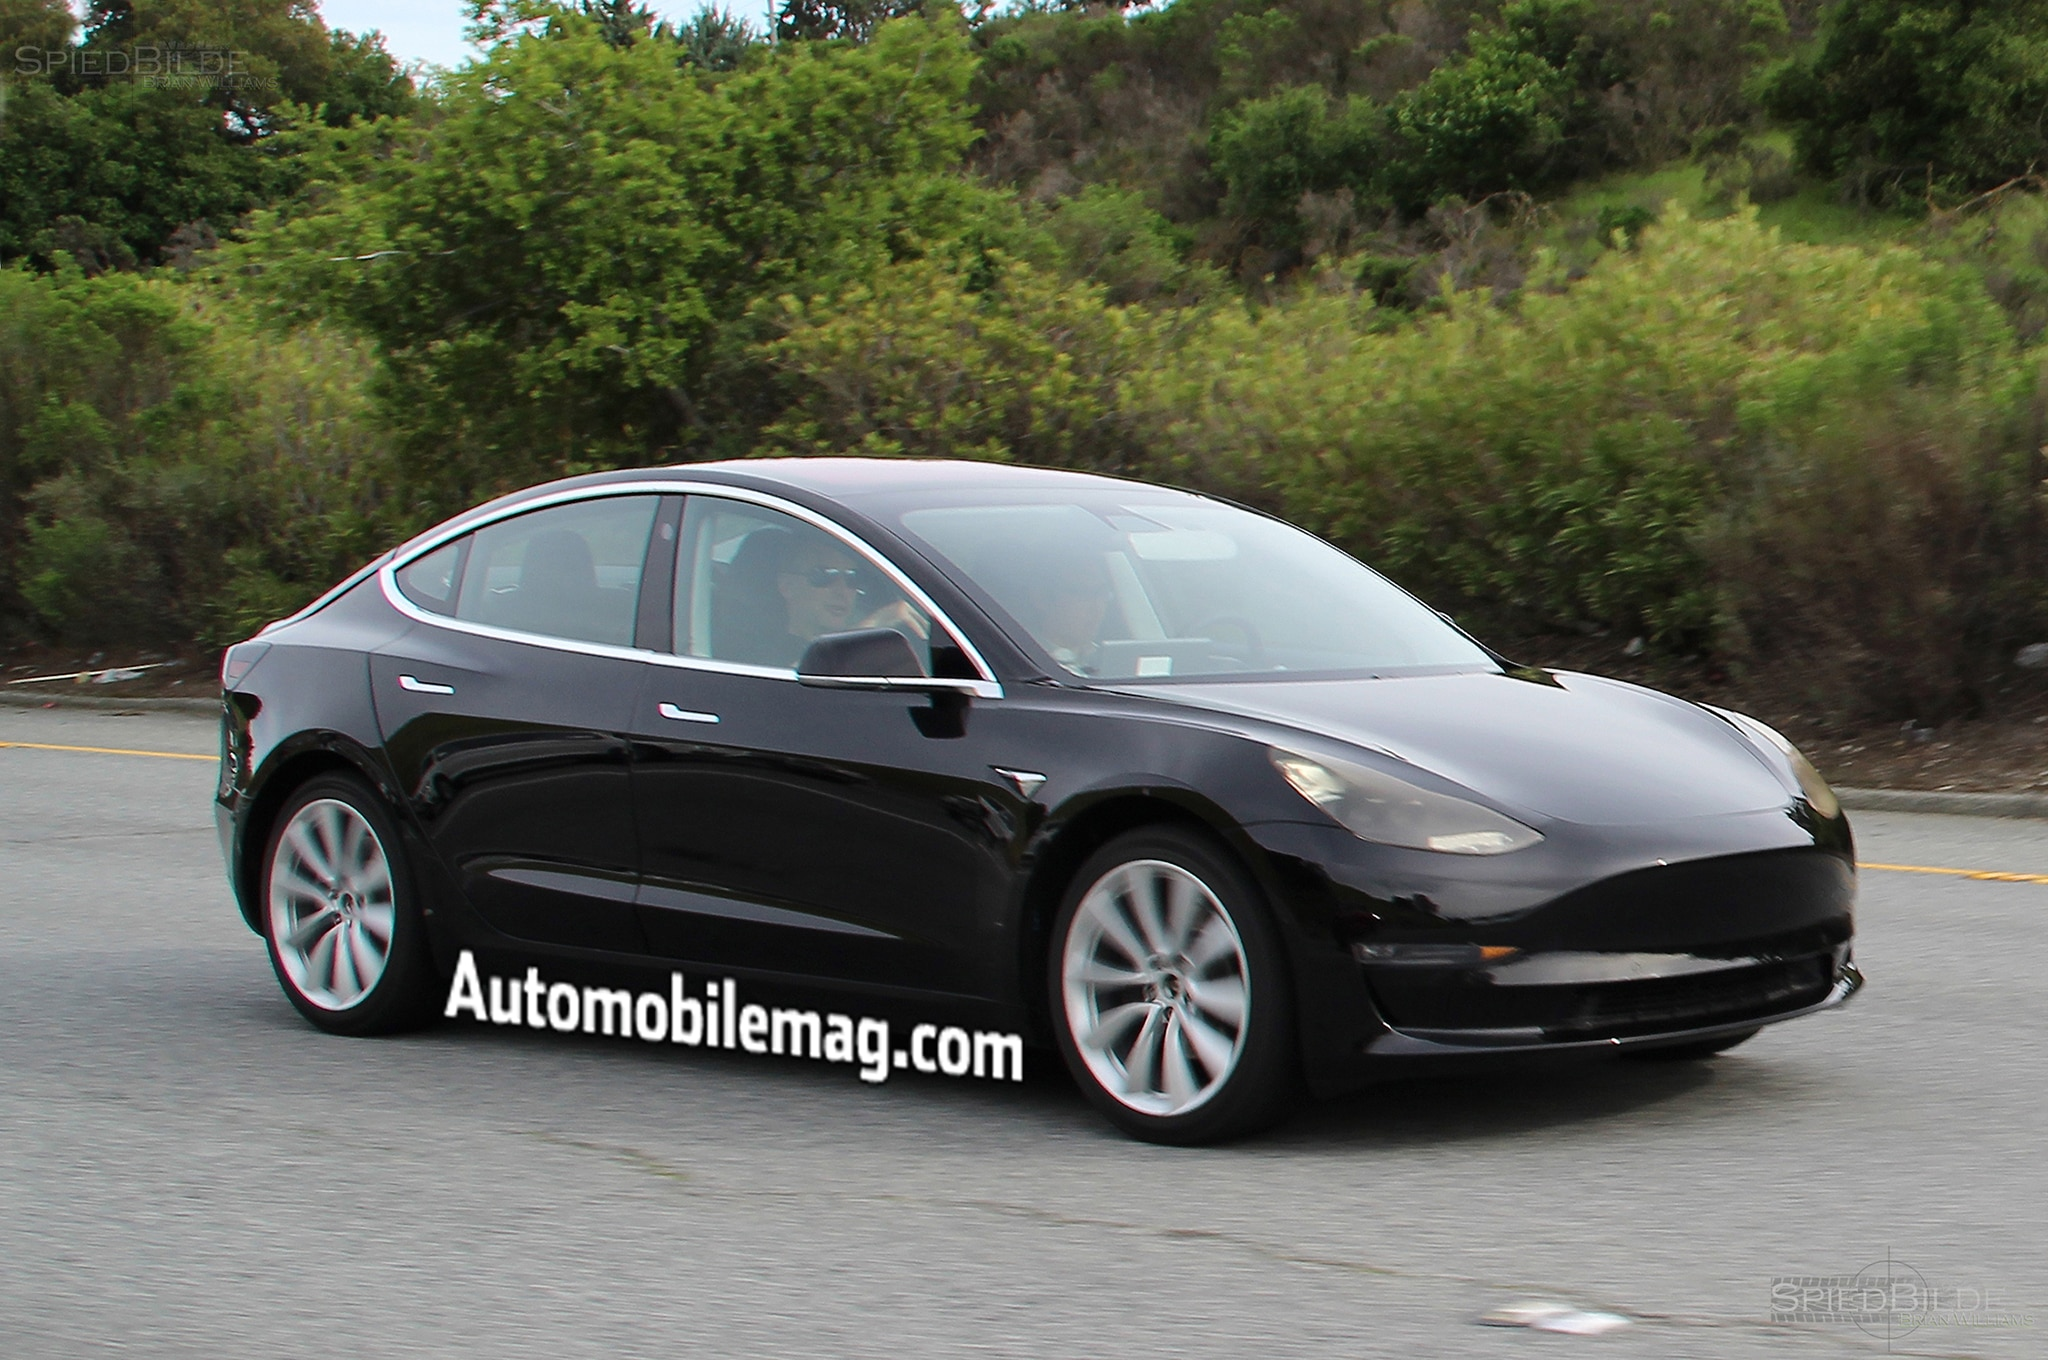 near production tesla model 3 spied testing automobile magazine. Black Bedroom Furniture Sets. Home Design Ideas